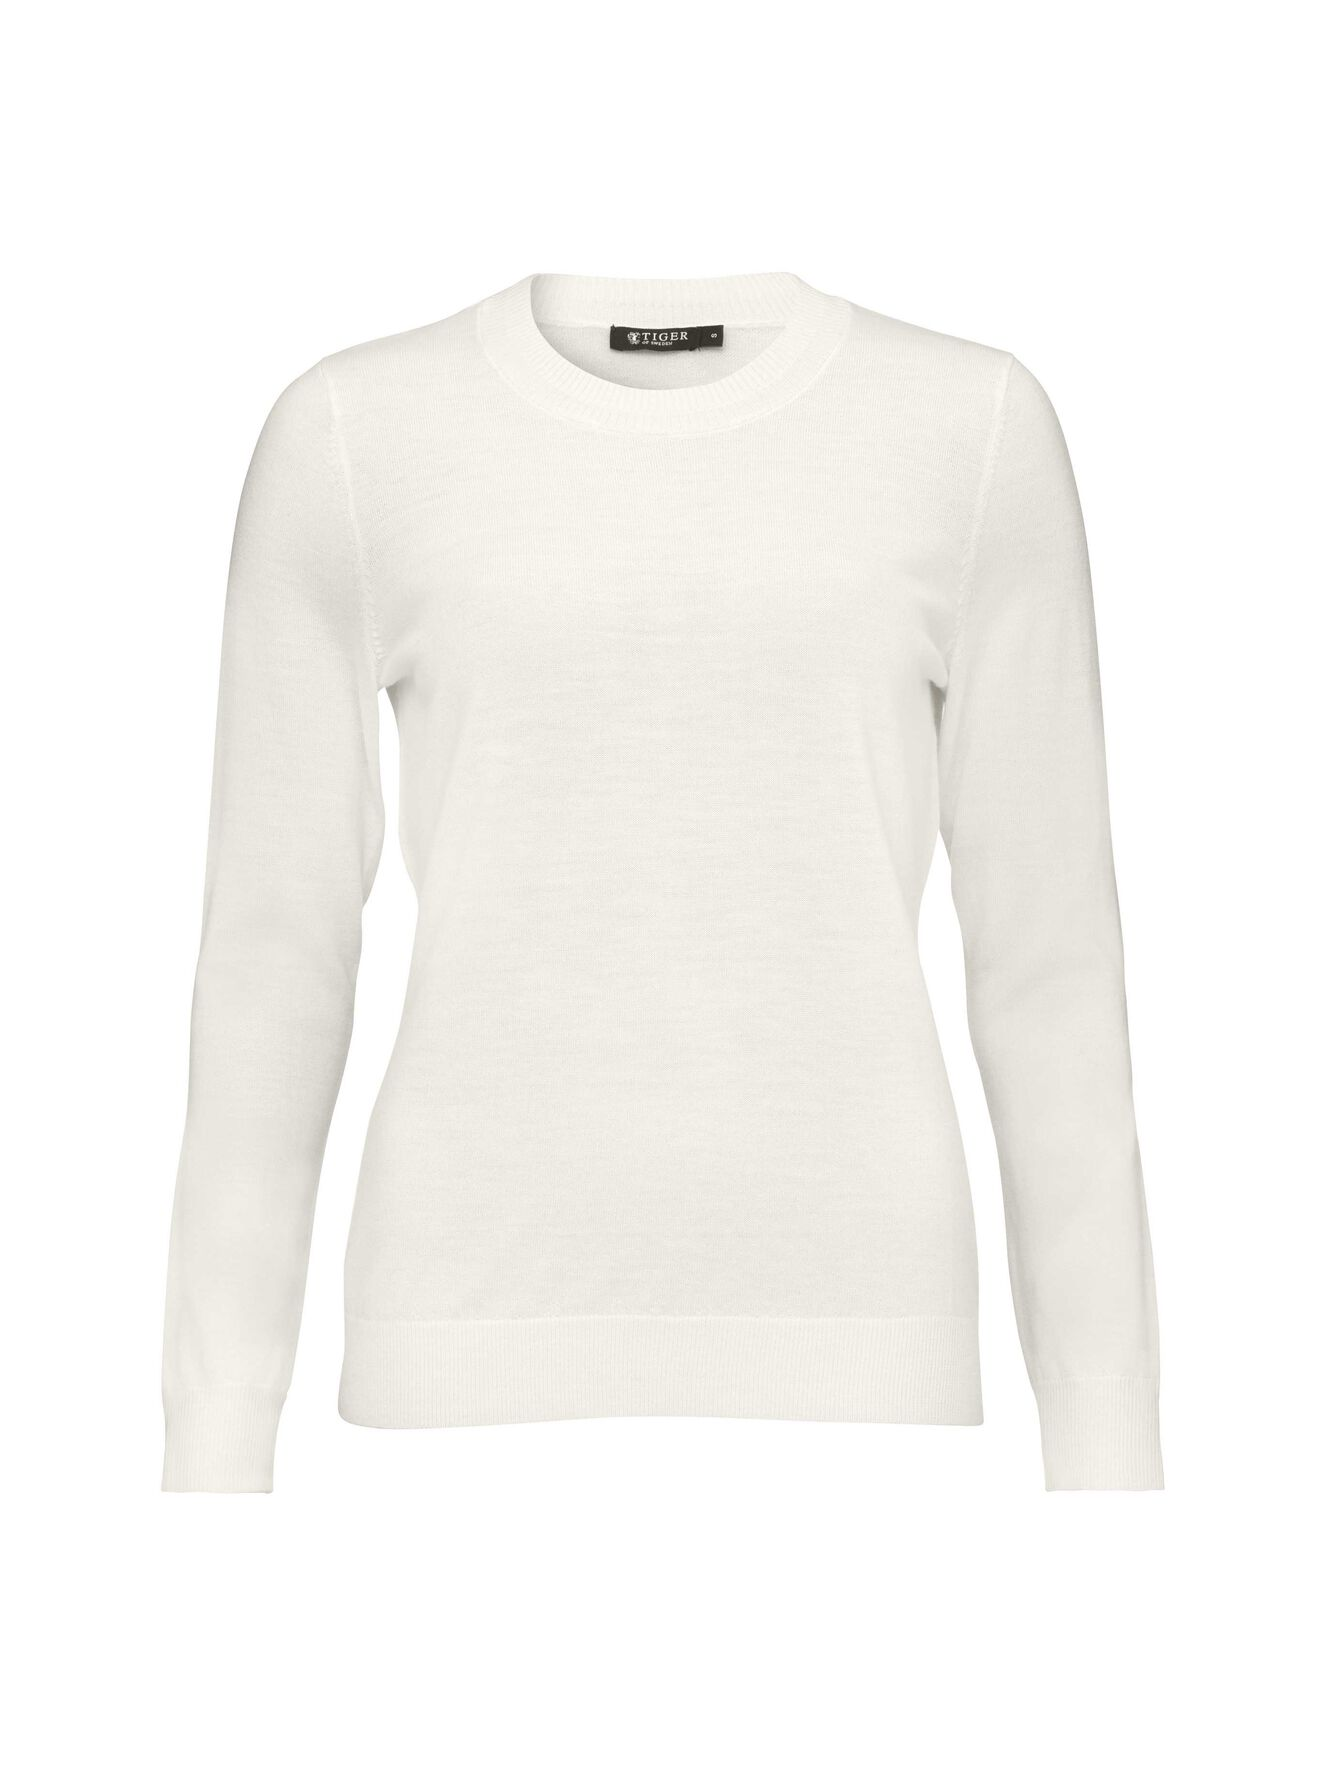 Cory Pullover in Star White from Tiger of Sweden